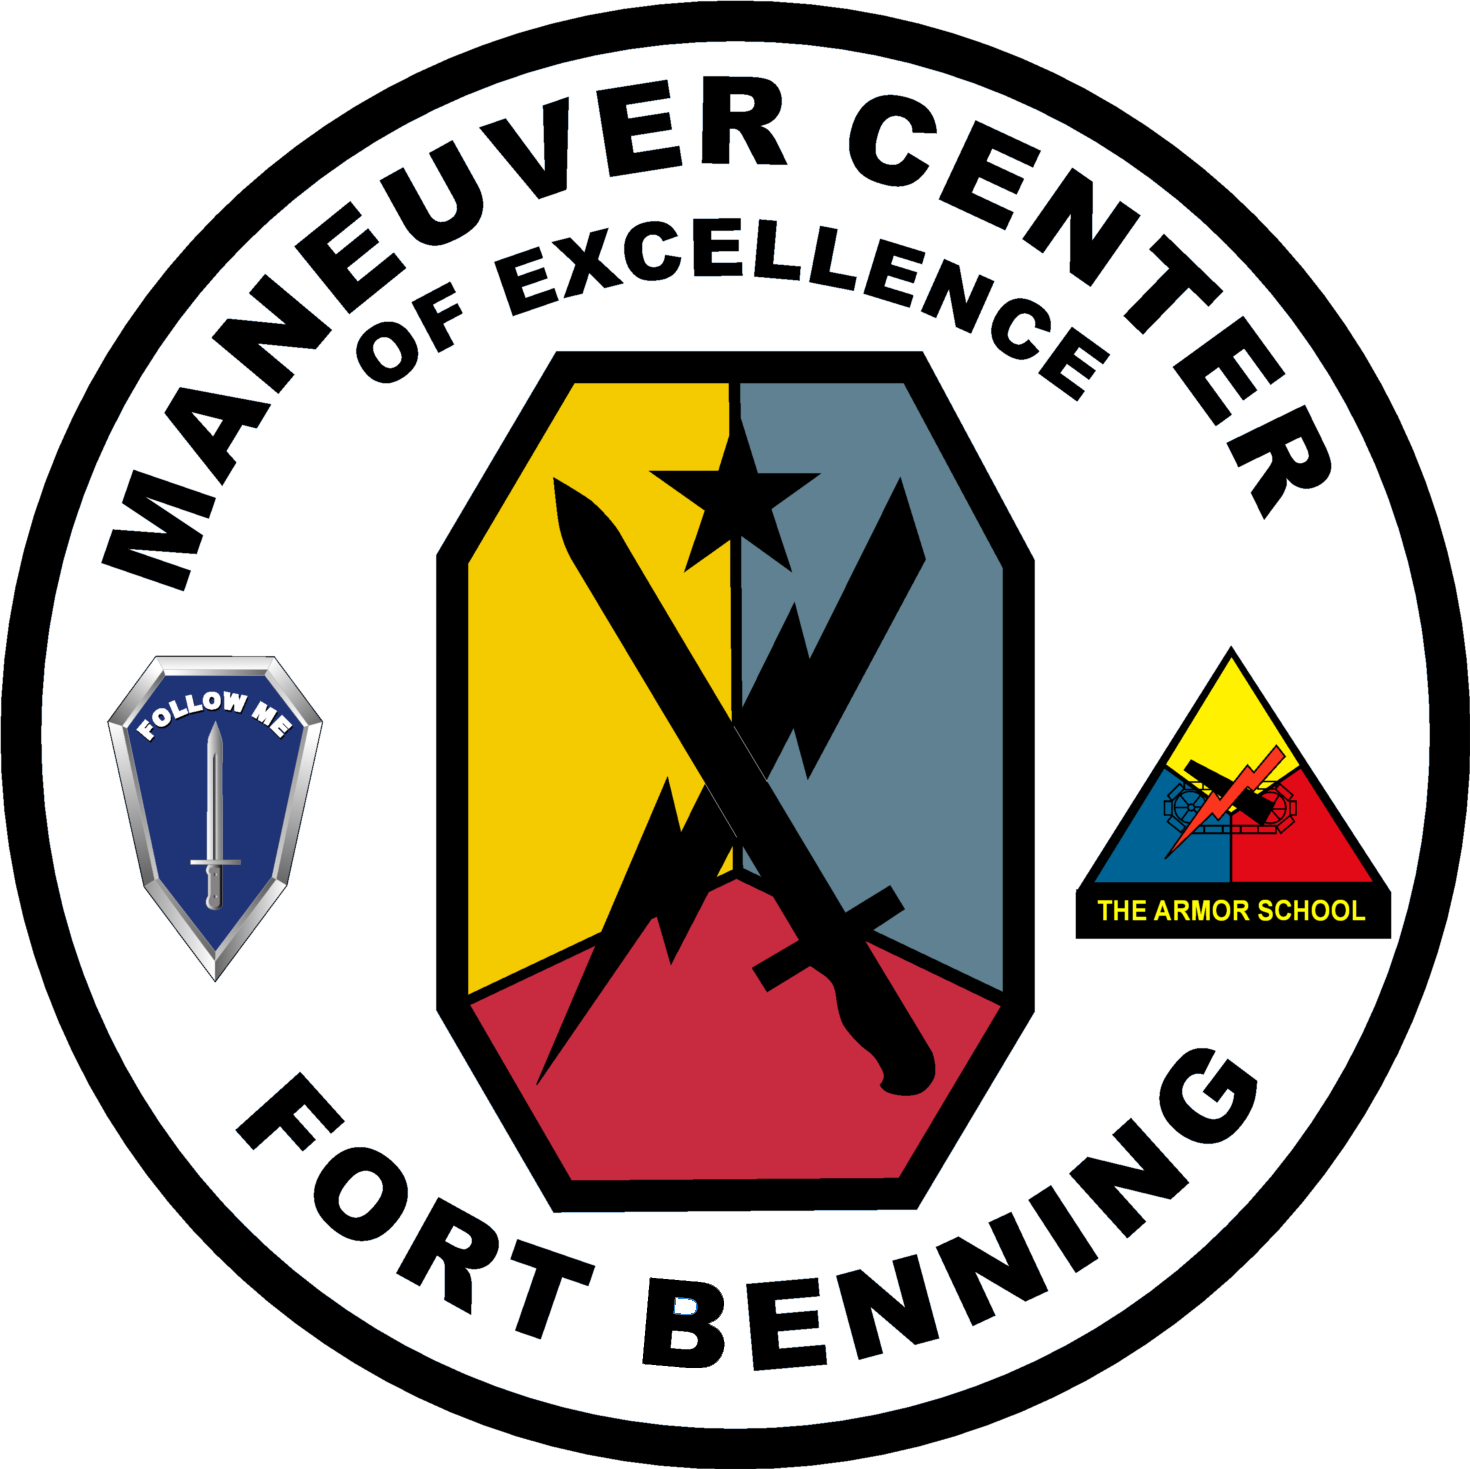 Maneuver Center